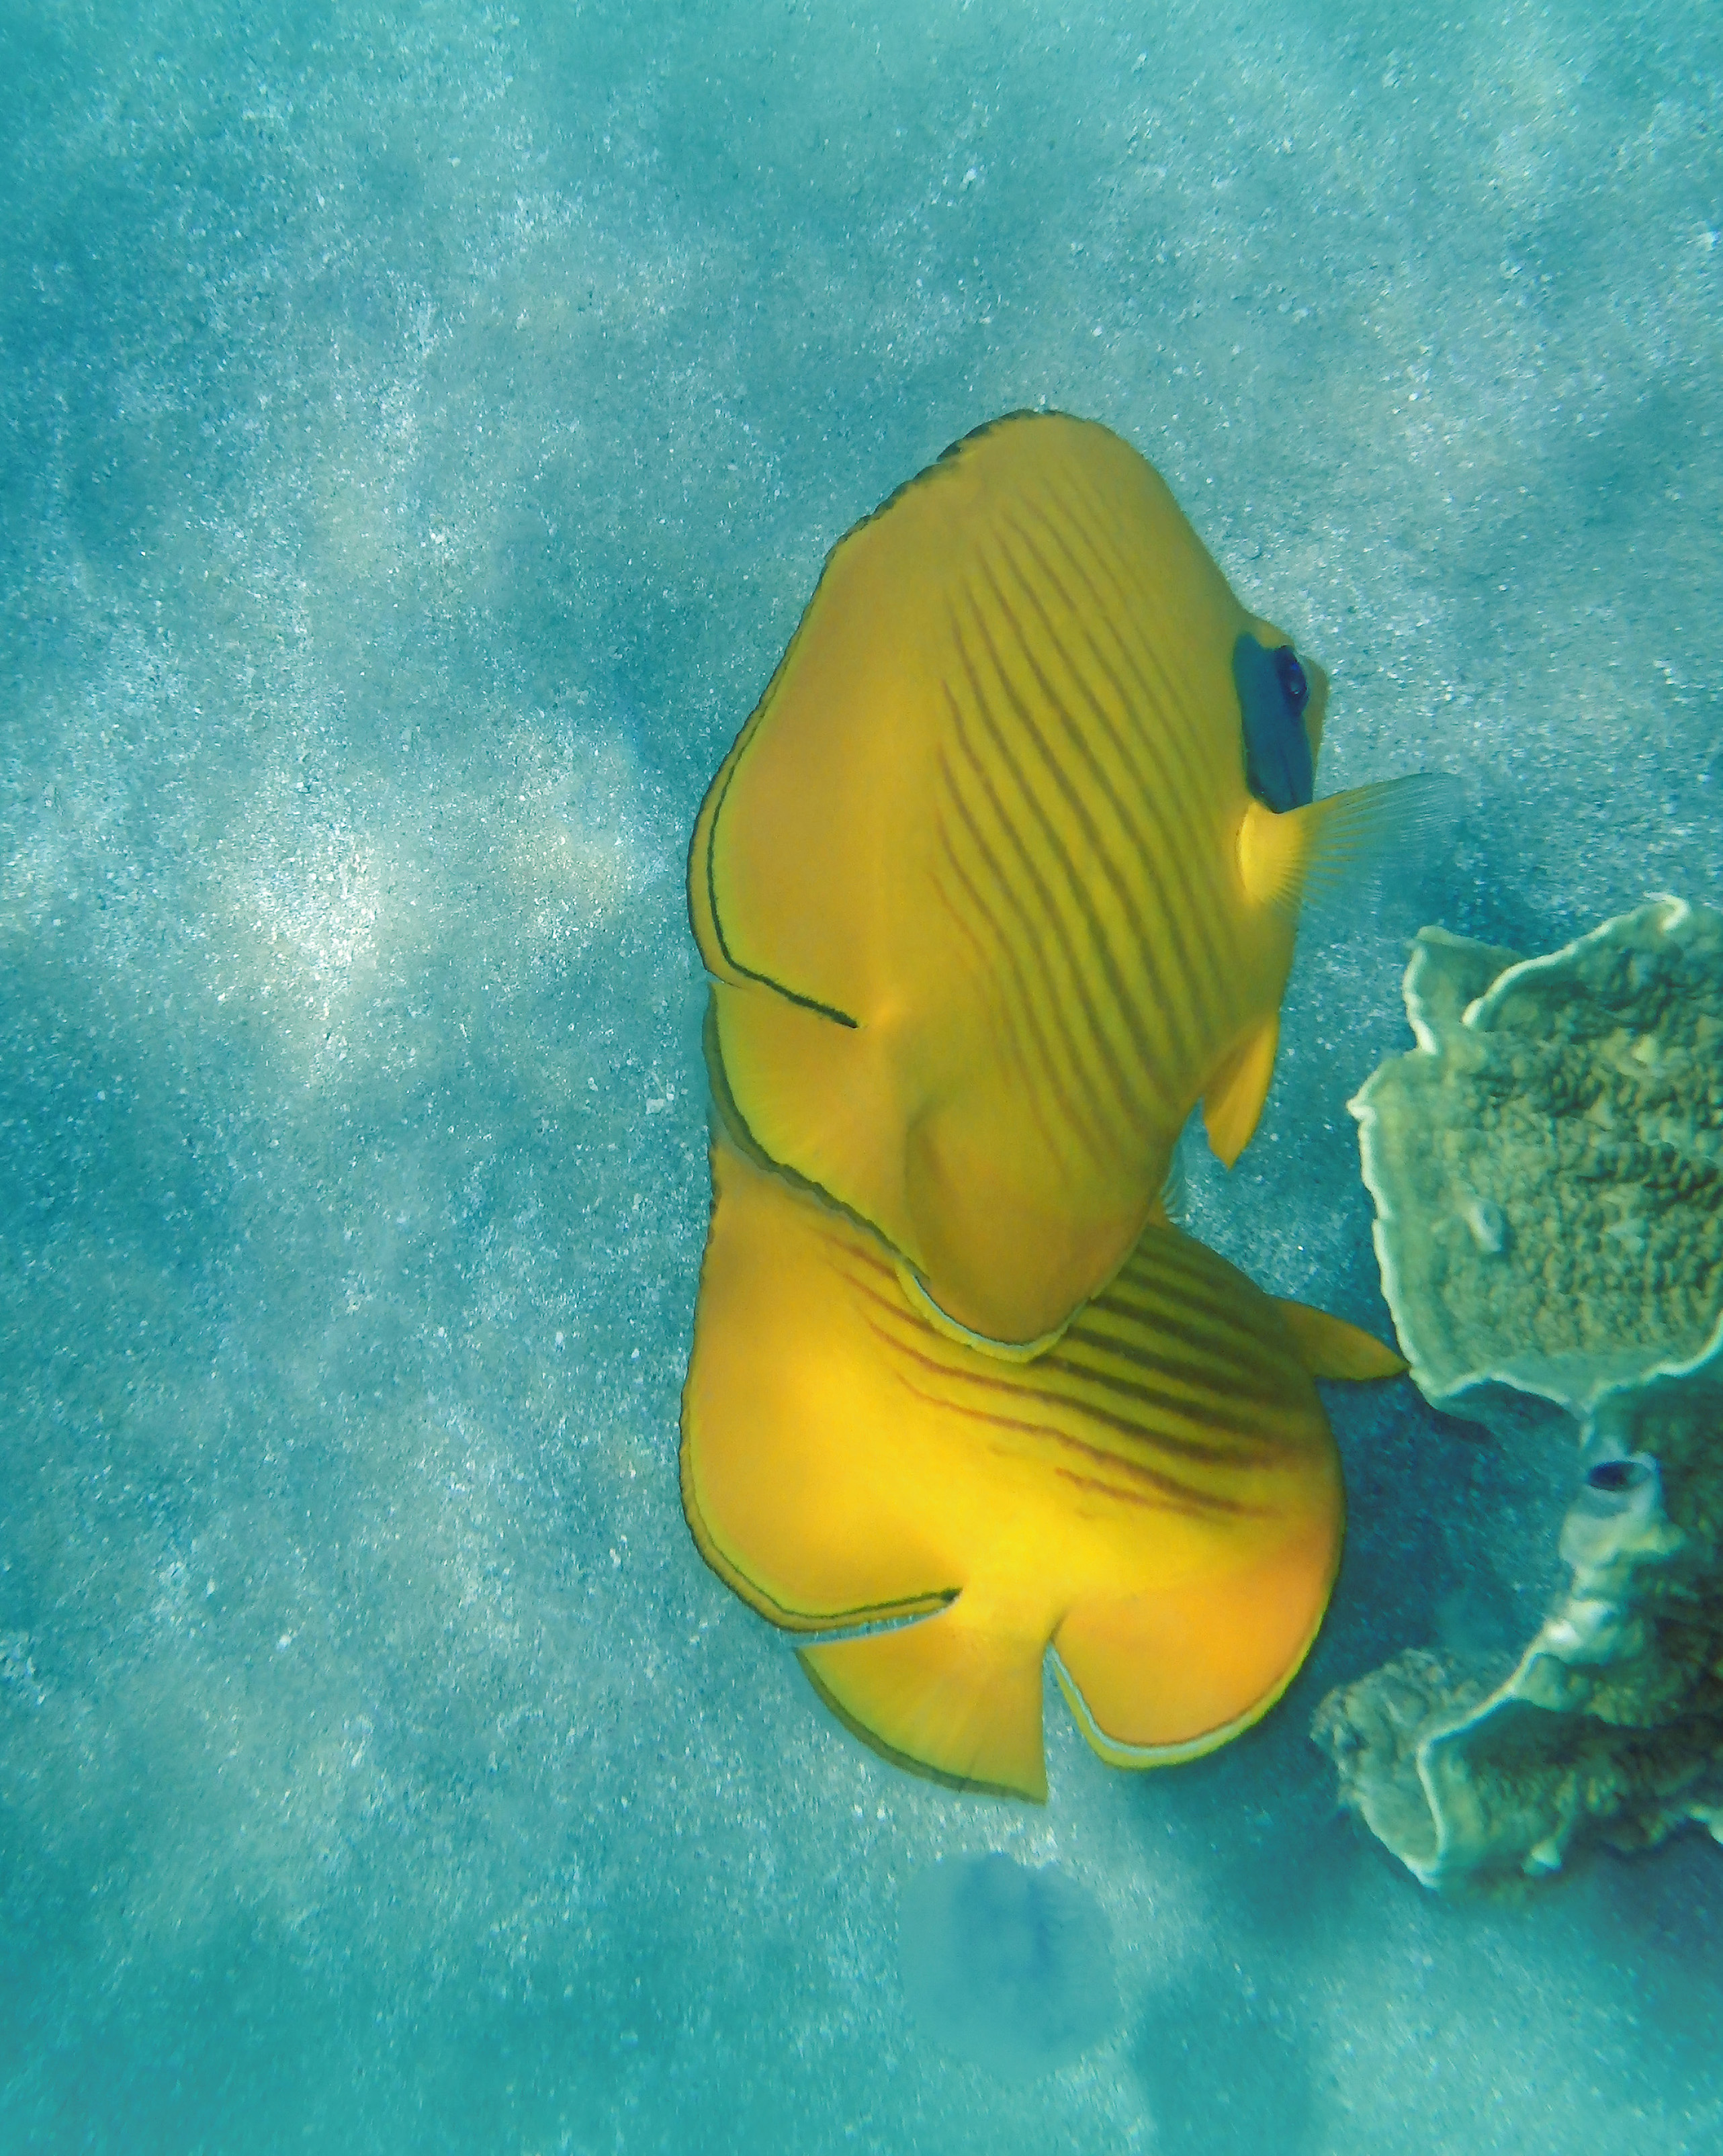 The Bluecheeked Butterflyfish On Turquoise.jpg